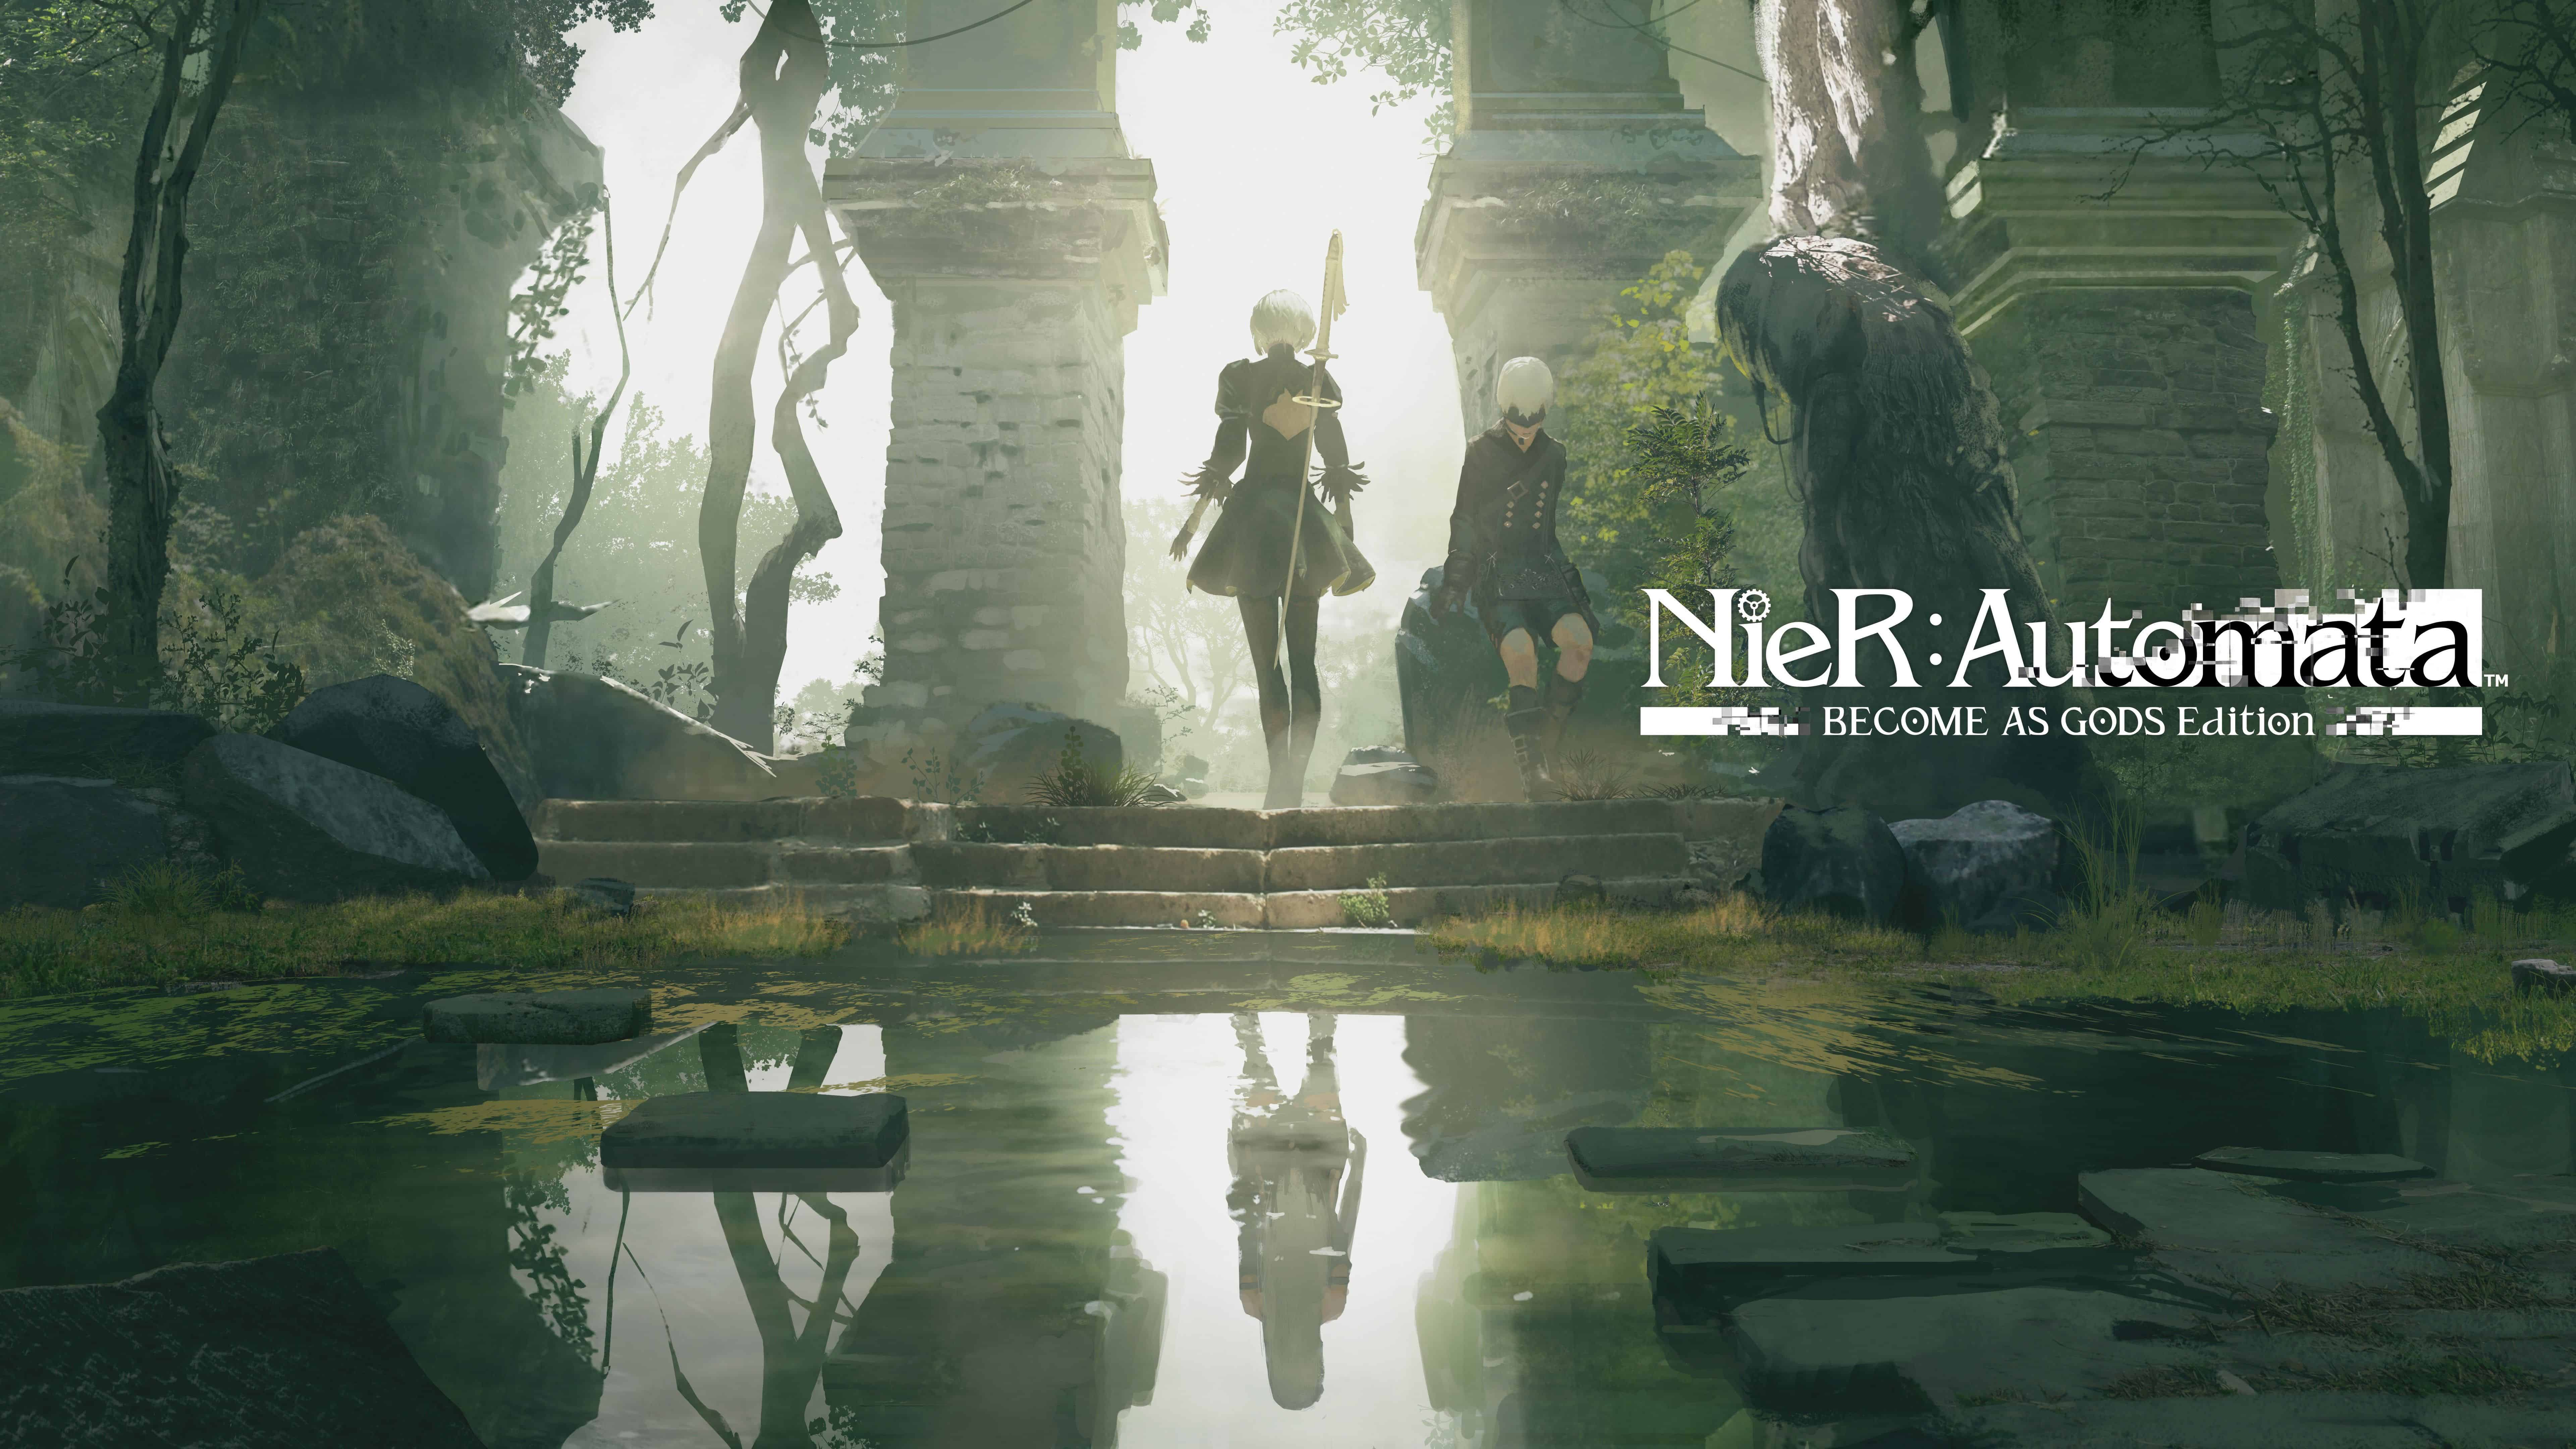 nier automata become as gods edition uhd 8k wallpaper